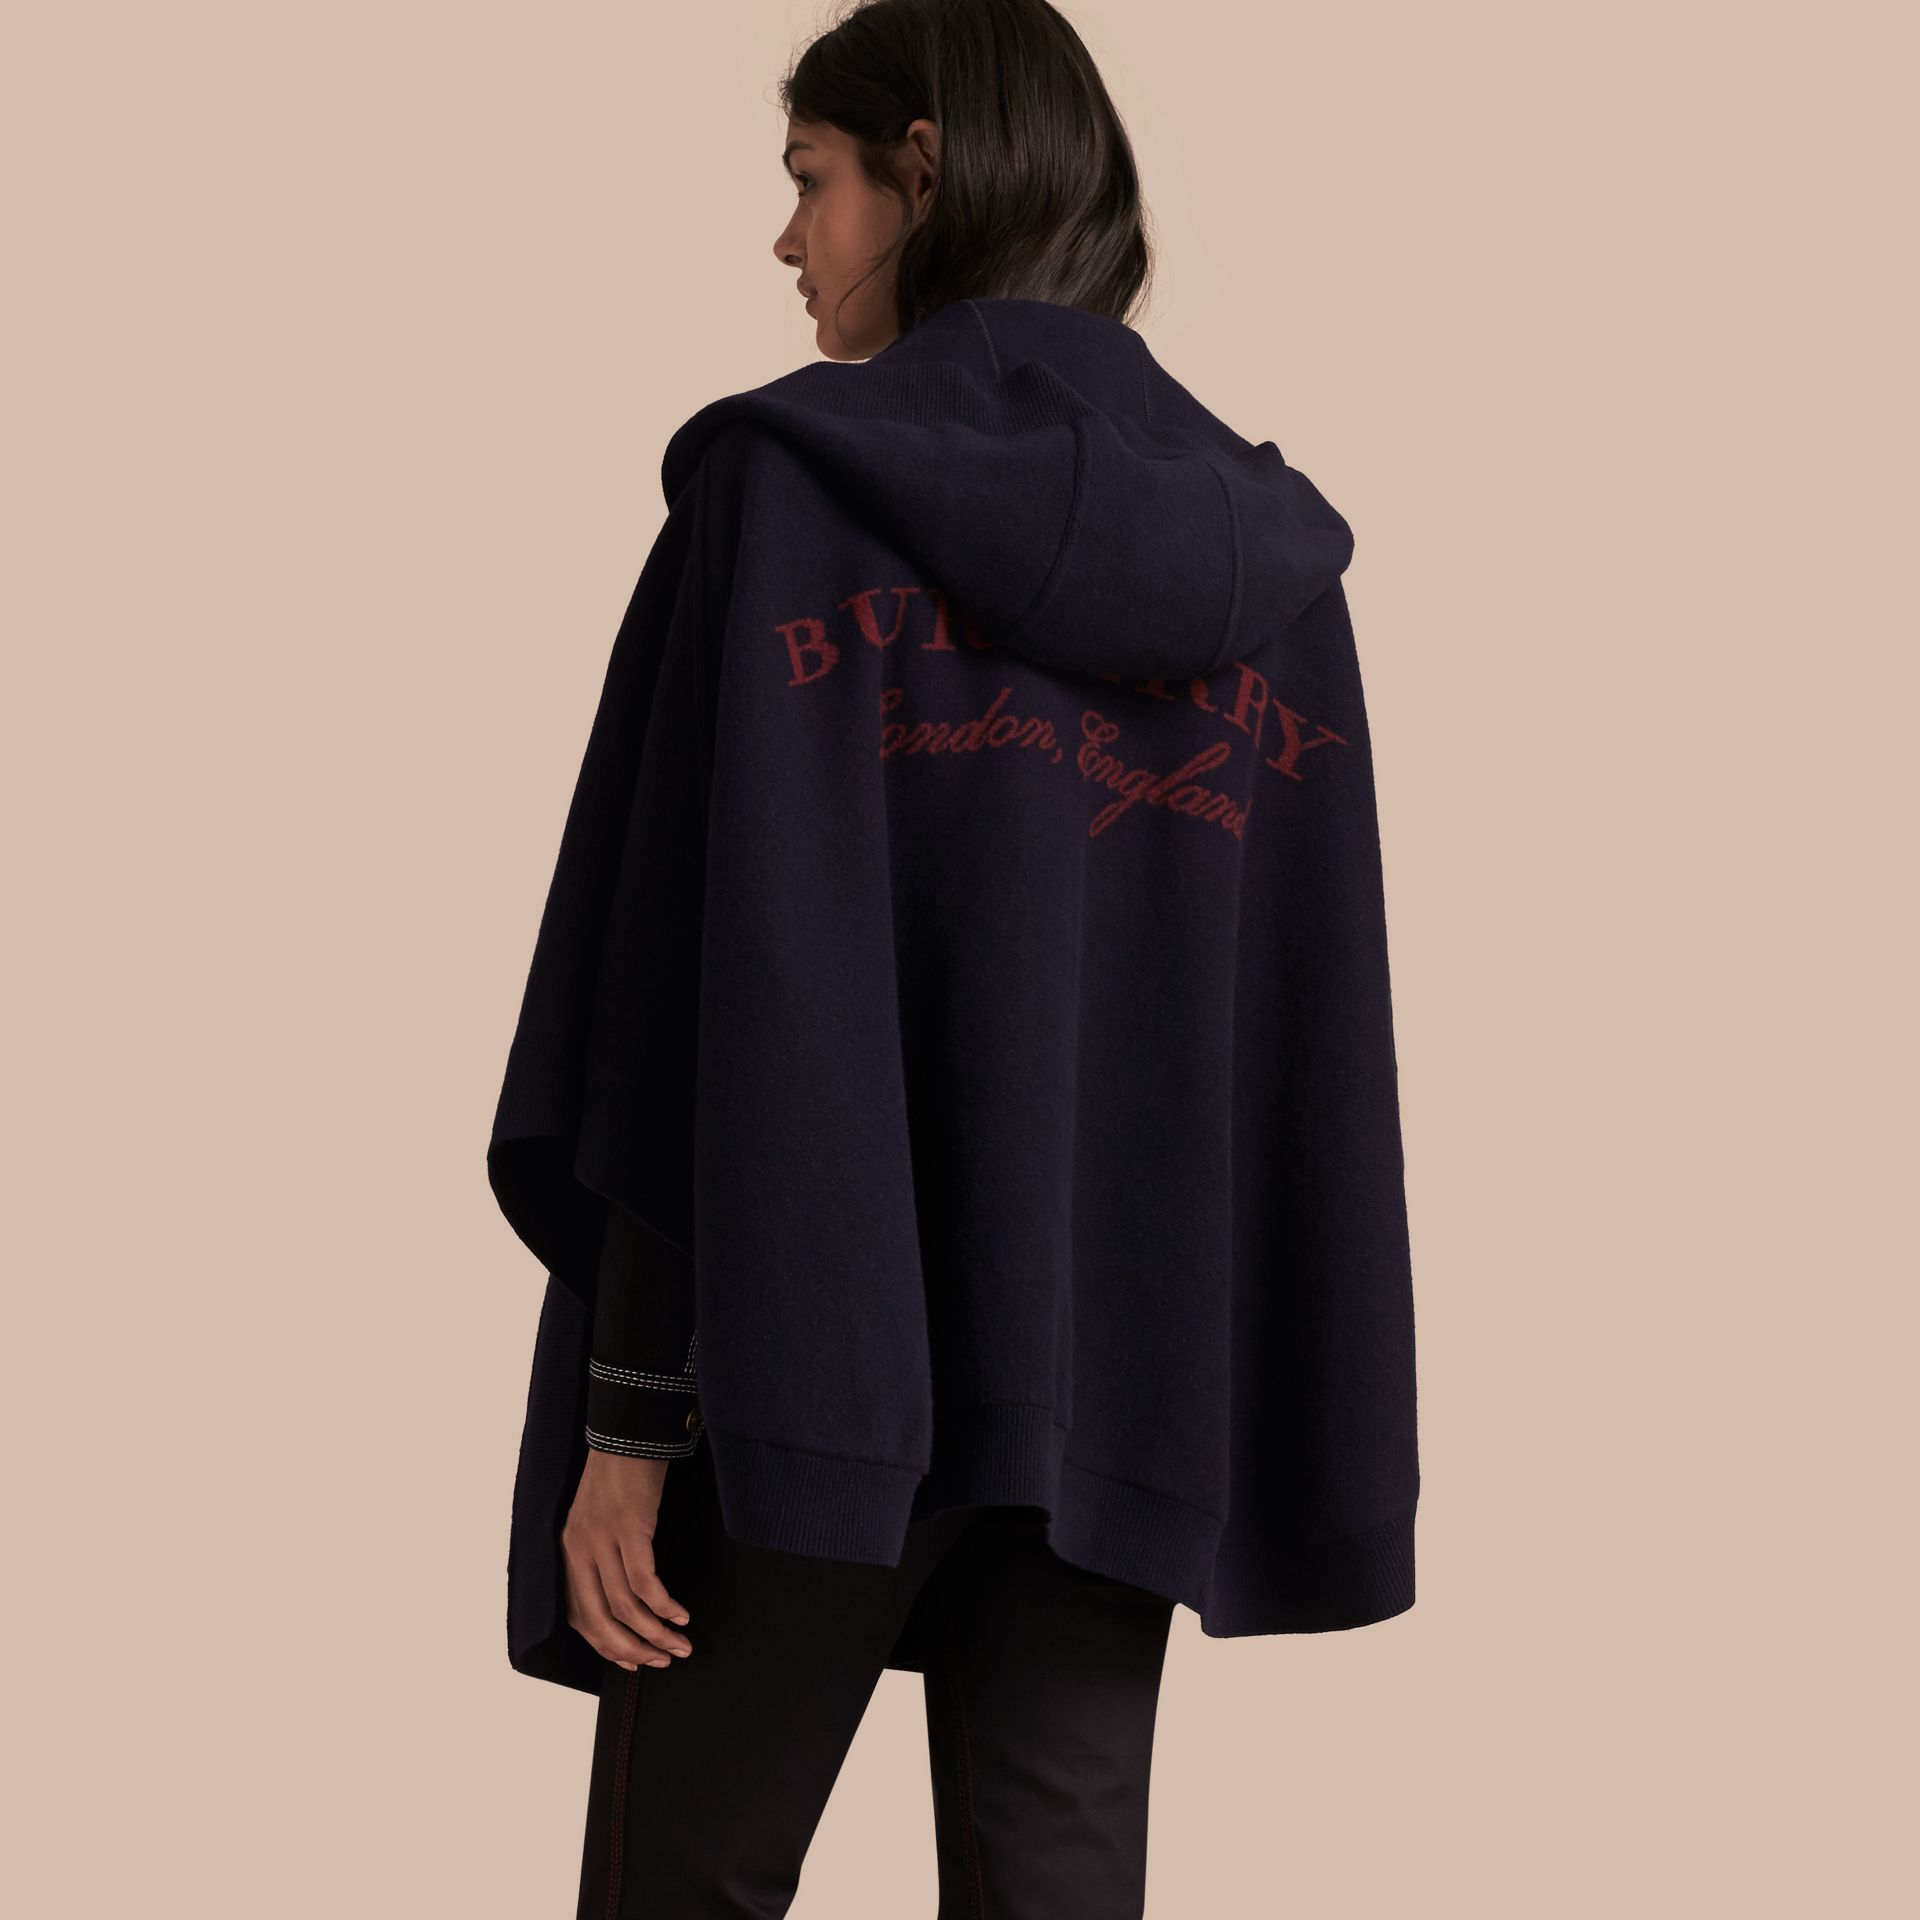 Navy/black Wool Cashmere Blend Hooded Poncho Navy/black - gallery image 1